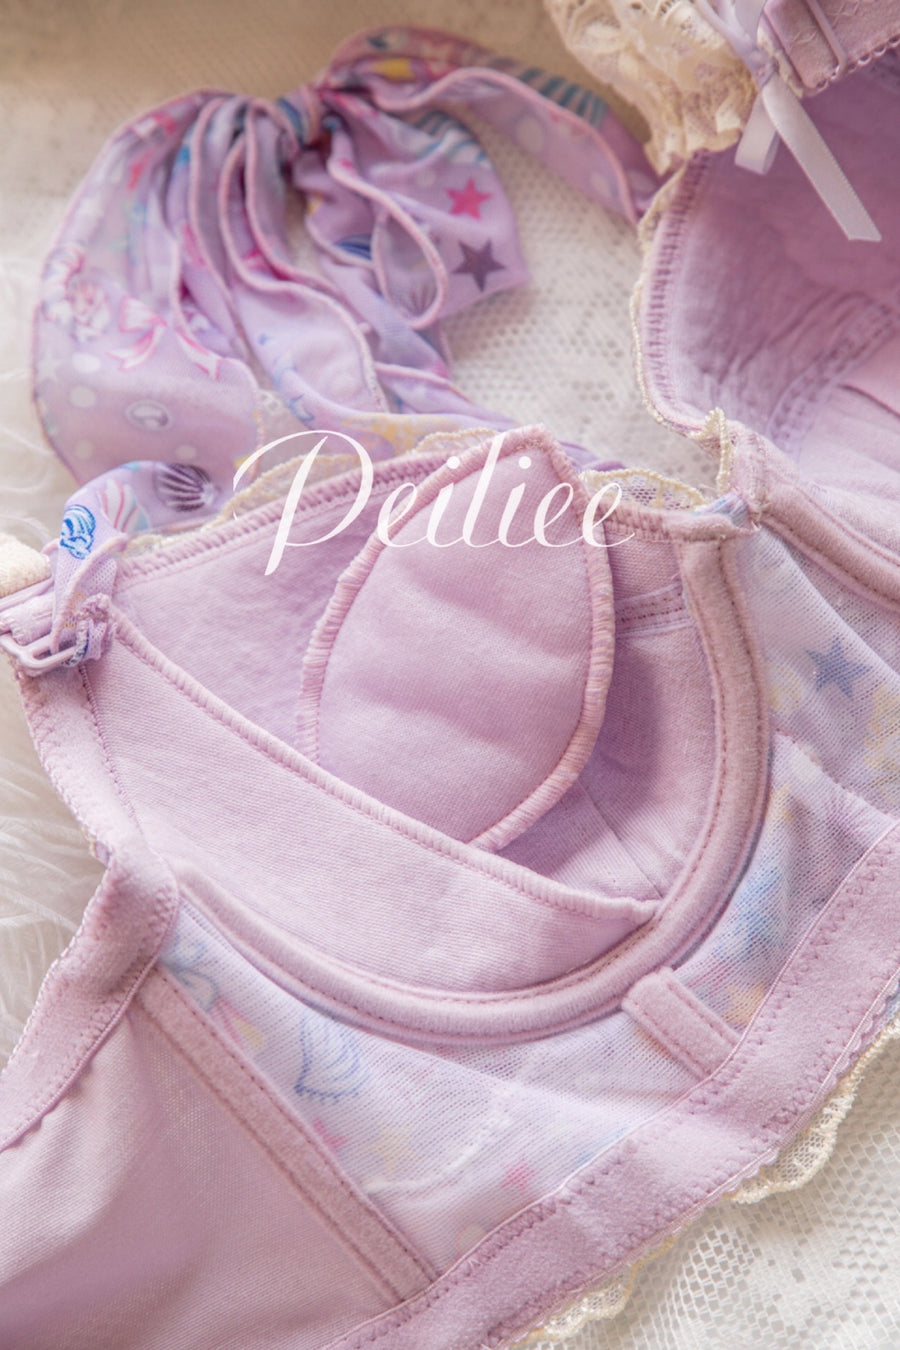 (Curve size included) Mermaid Story Soft Bra Set [Premium Selected Japanese Brand] - Peiliee Shop